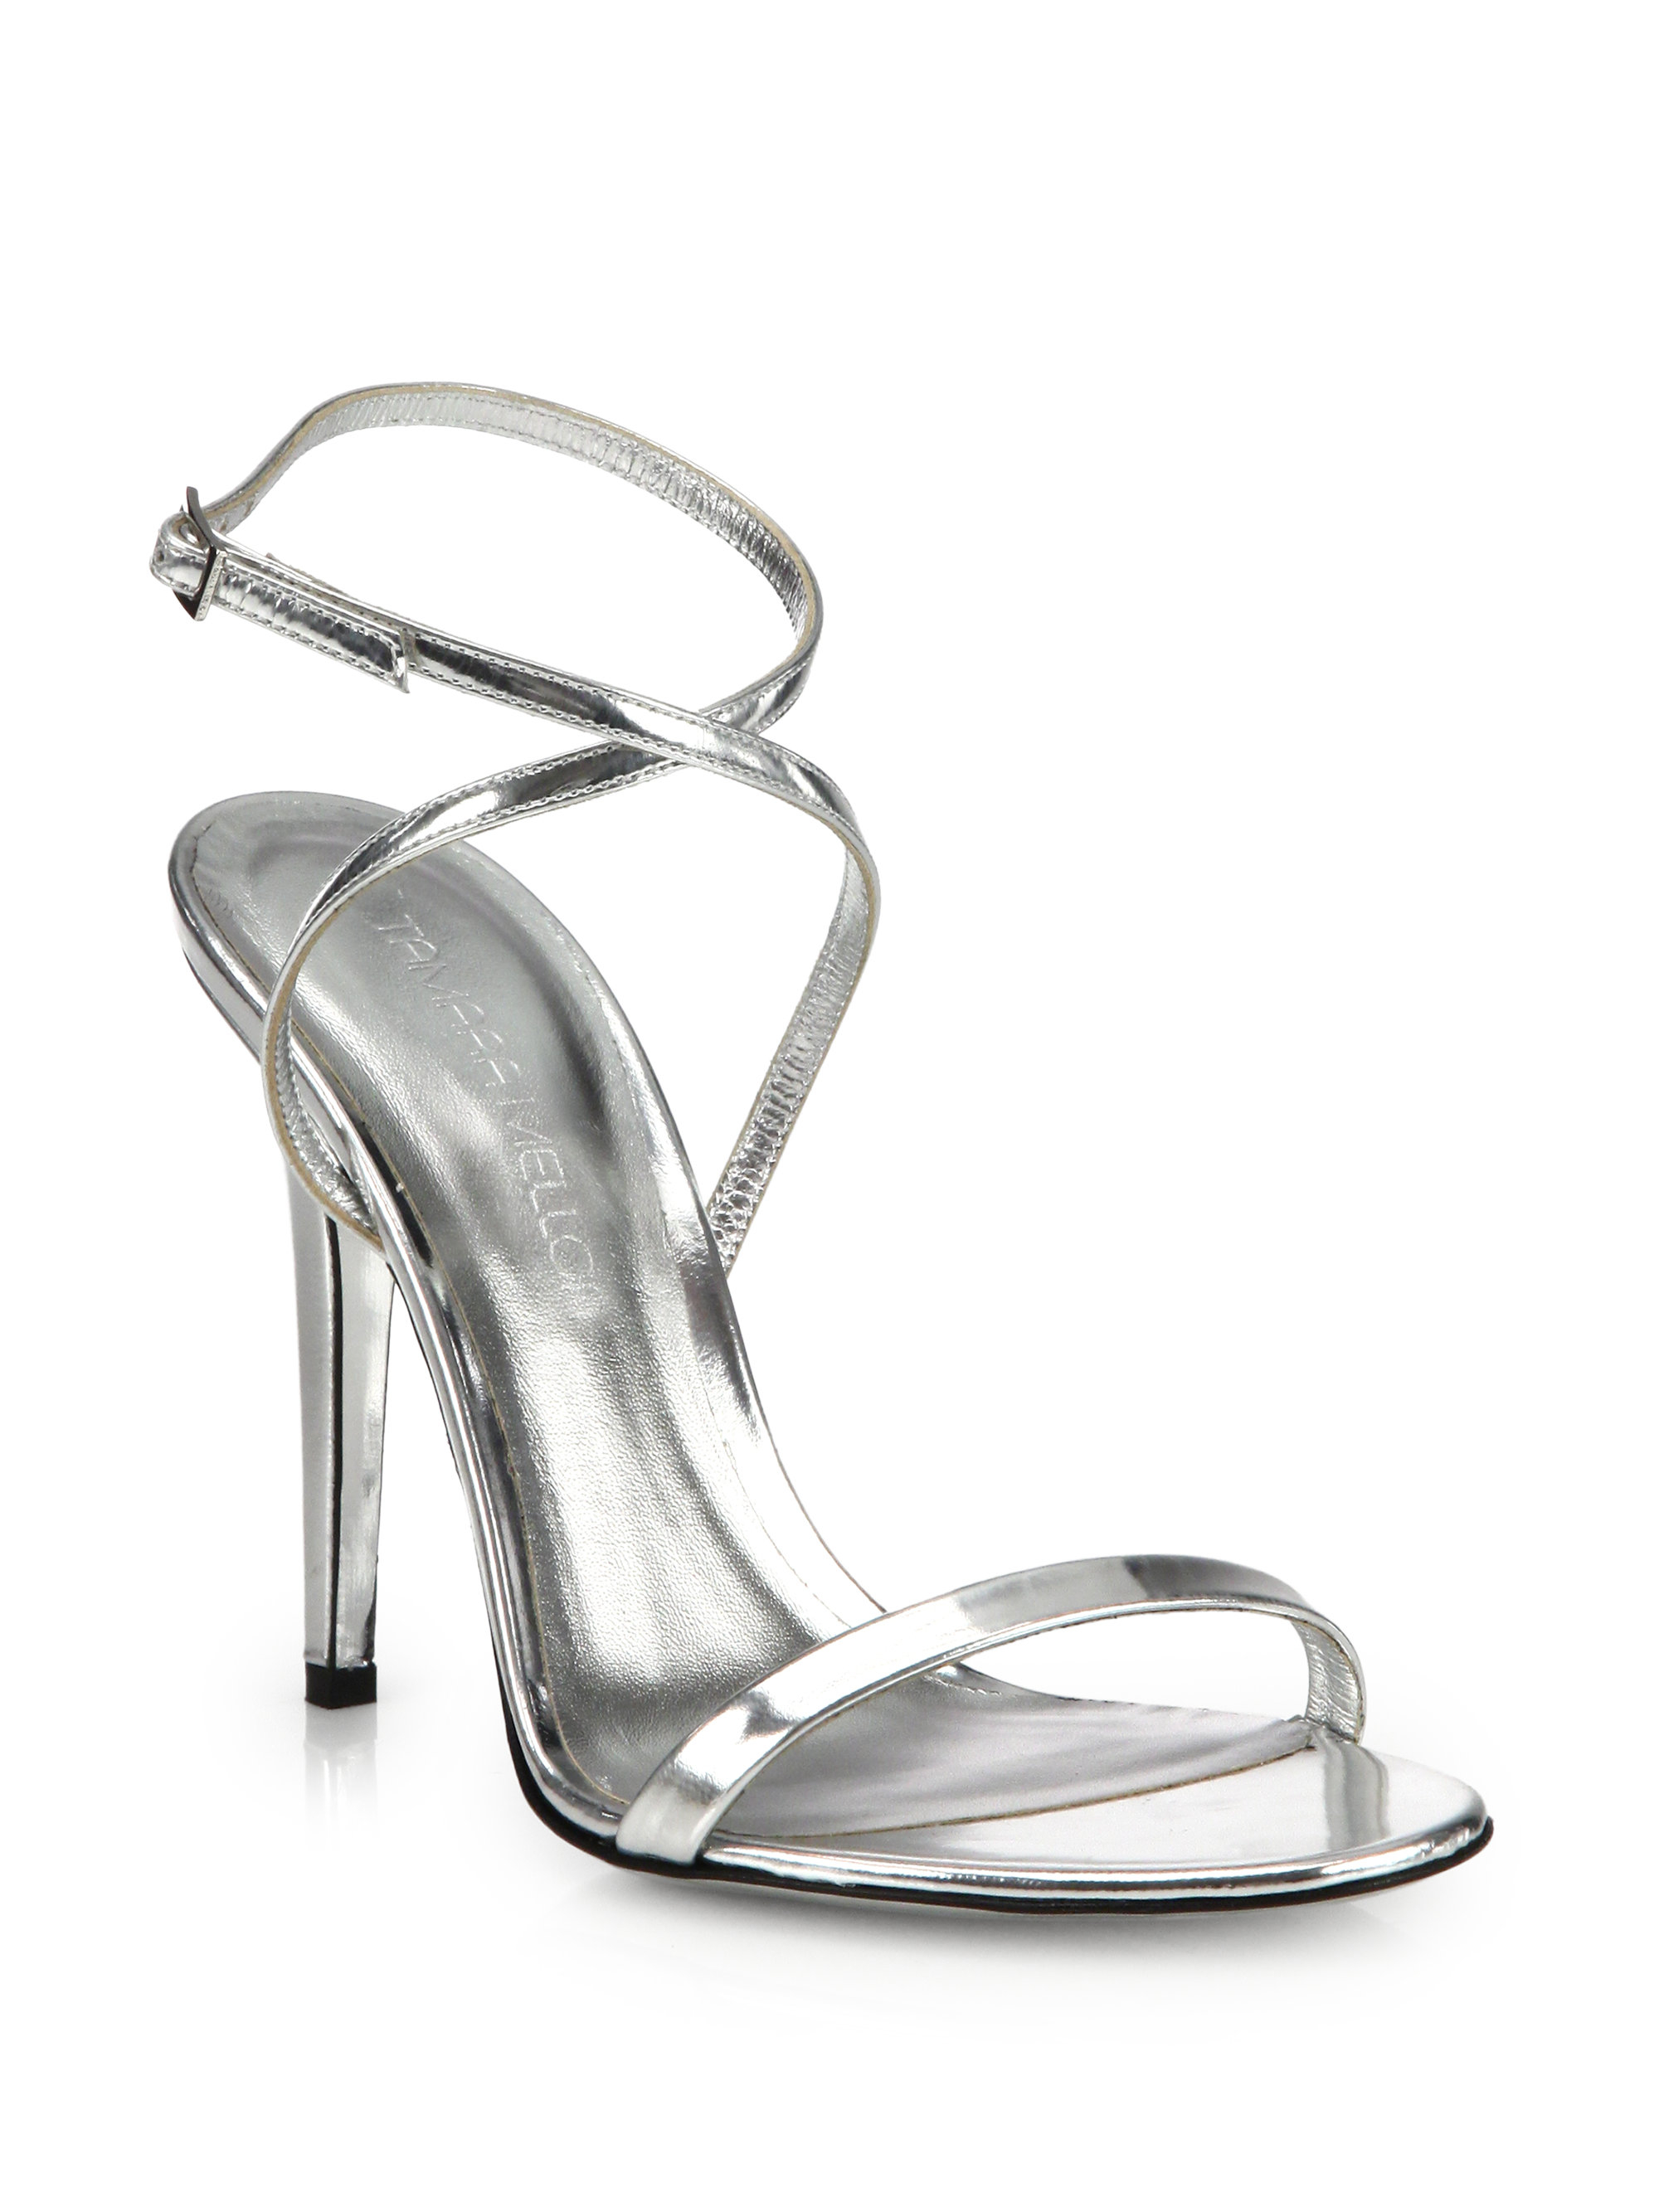 Black And Silver Strappy Heels | Tsaa Heel